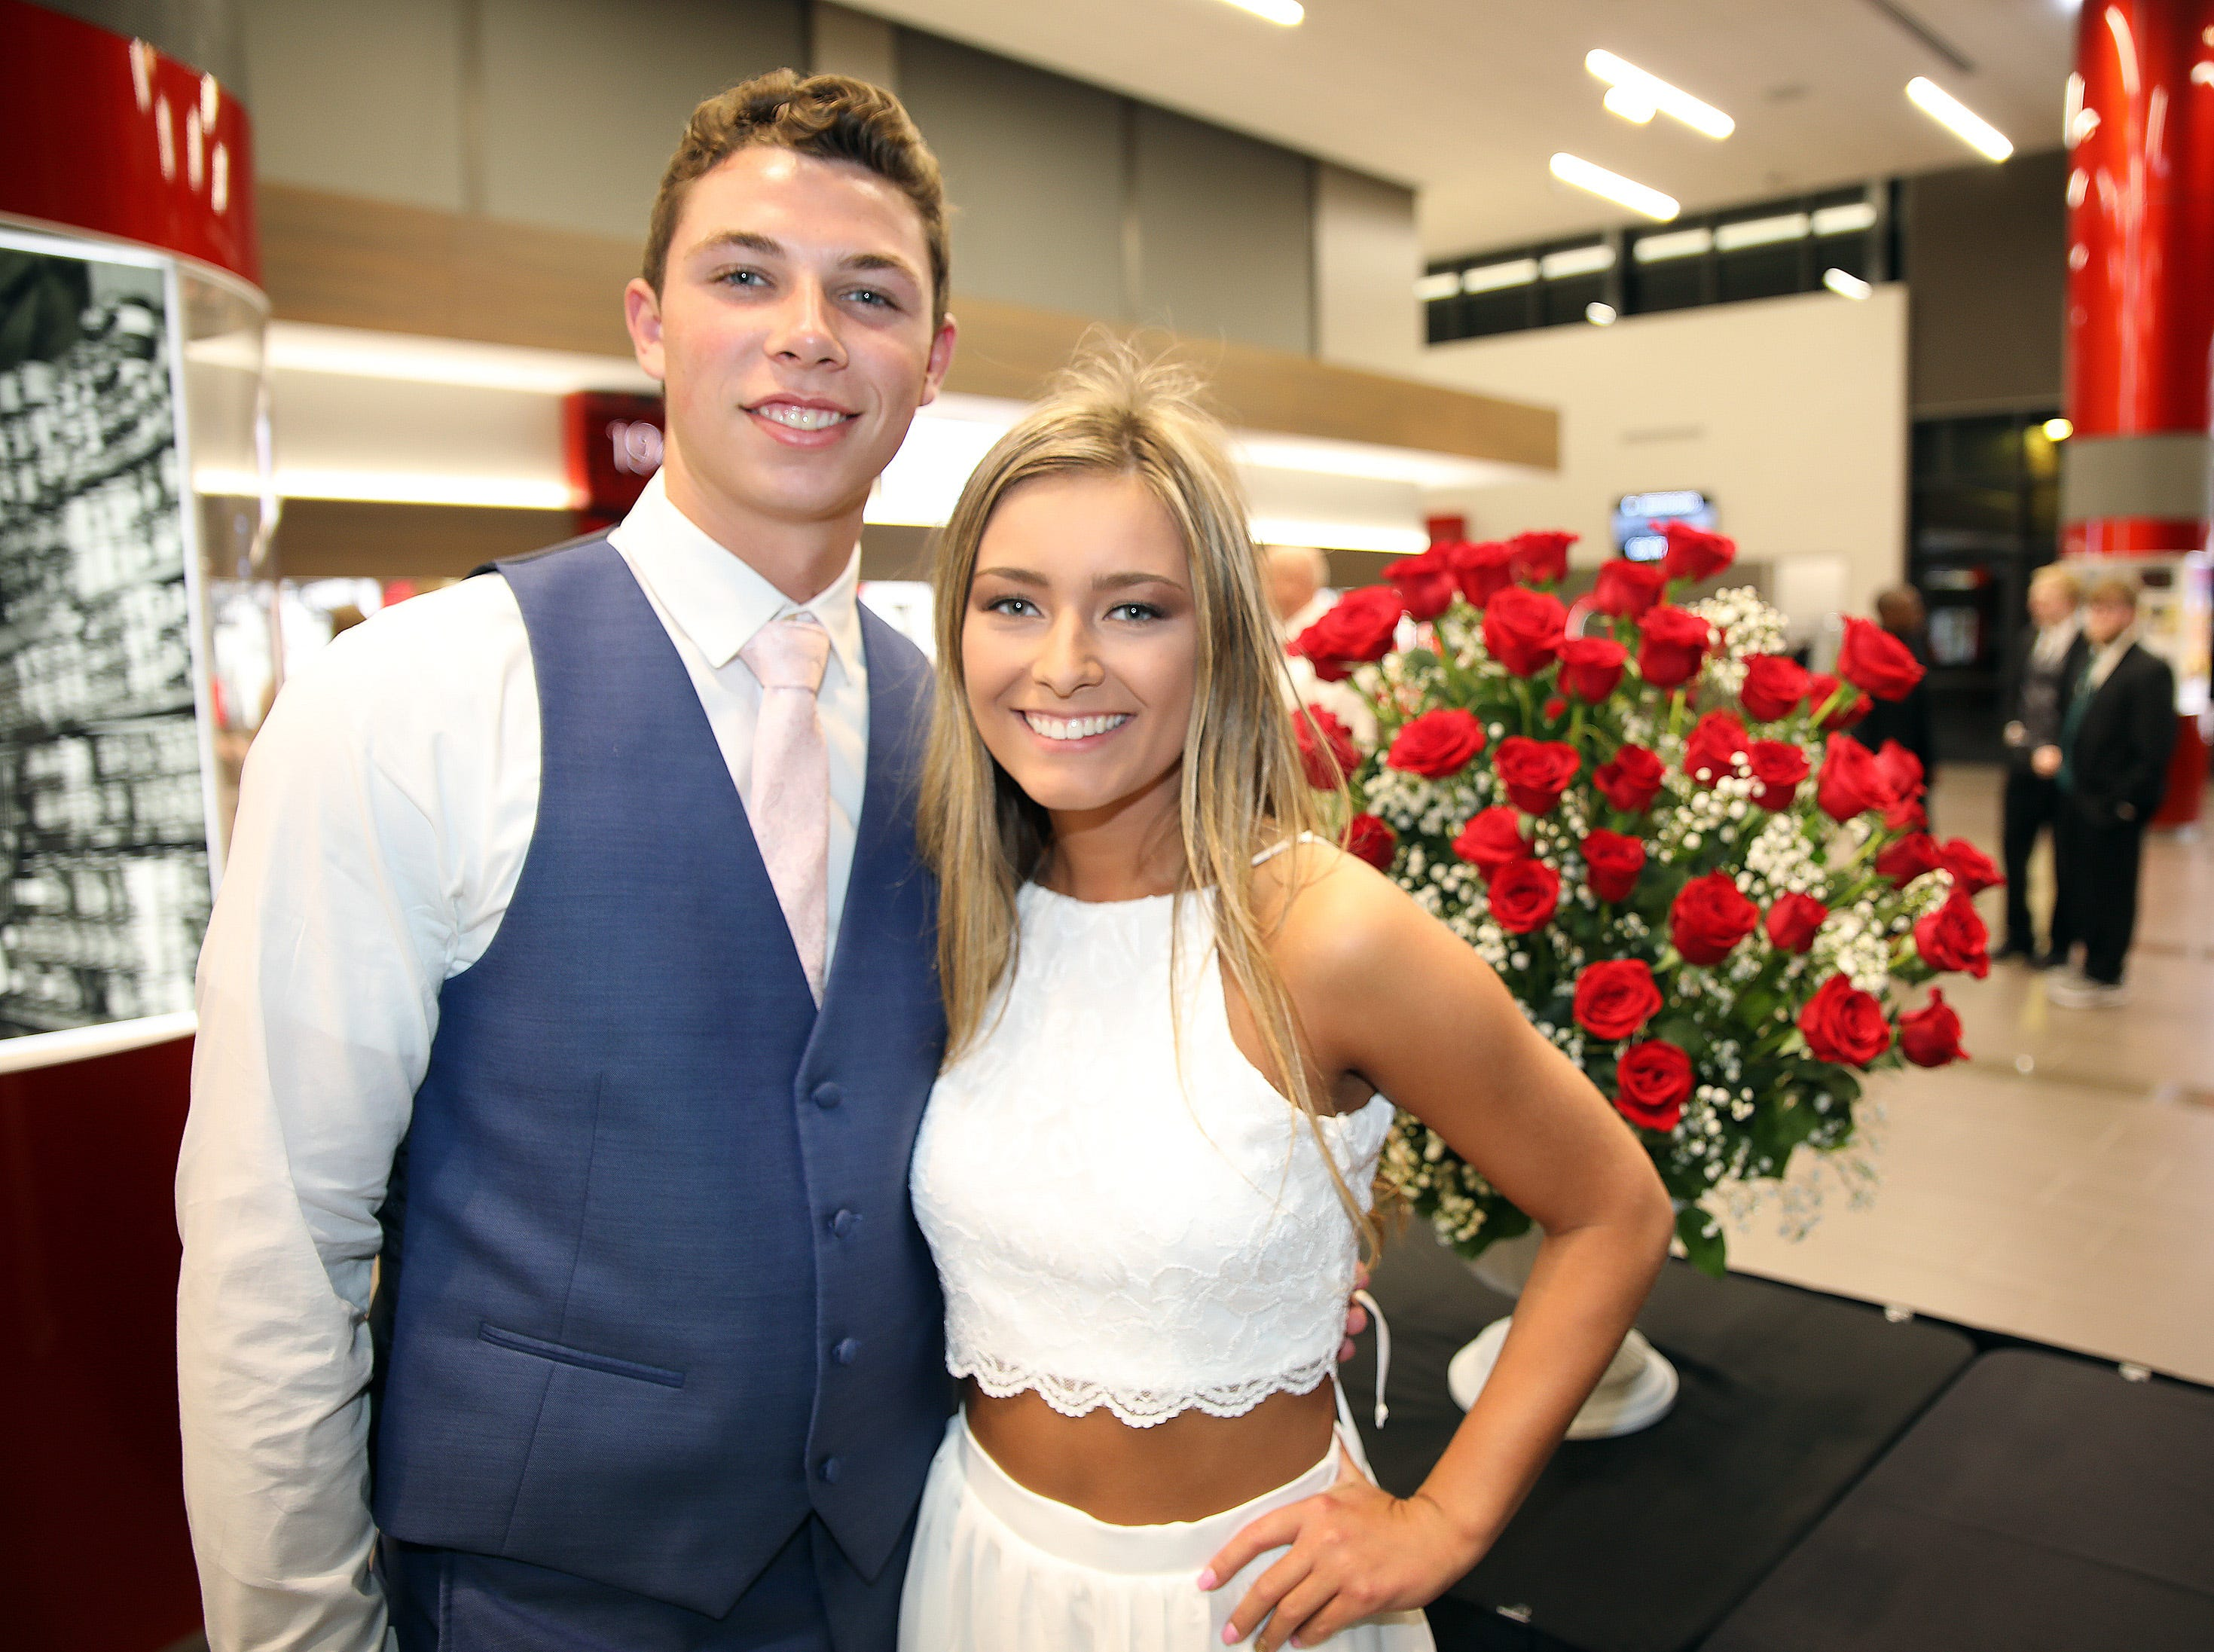 Seniors Zach Eaton and Steph Whitsell attend the Waukee High School Prom at the Ron Pearson Center in West Des Moines on Saturday, April 6, 2019. The theme for this year's prom was Moonlight and Roses and then followed by a tropical-themed Waukiki After Prom from 11 p.m. to 5 a.m.